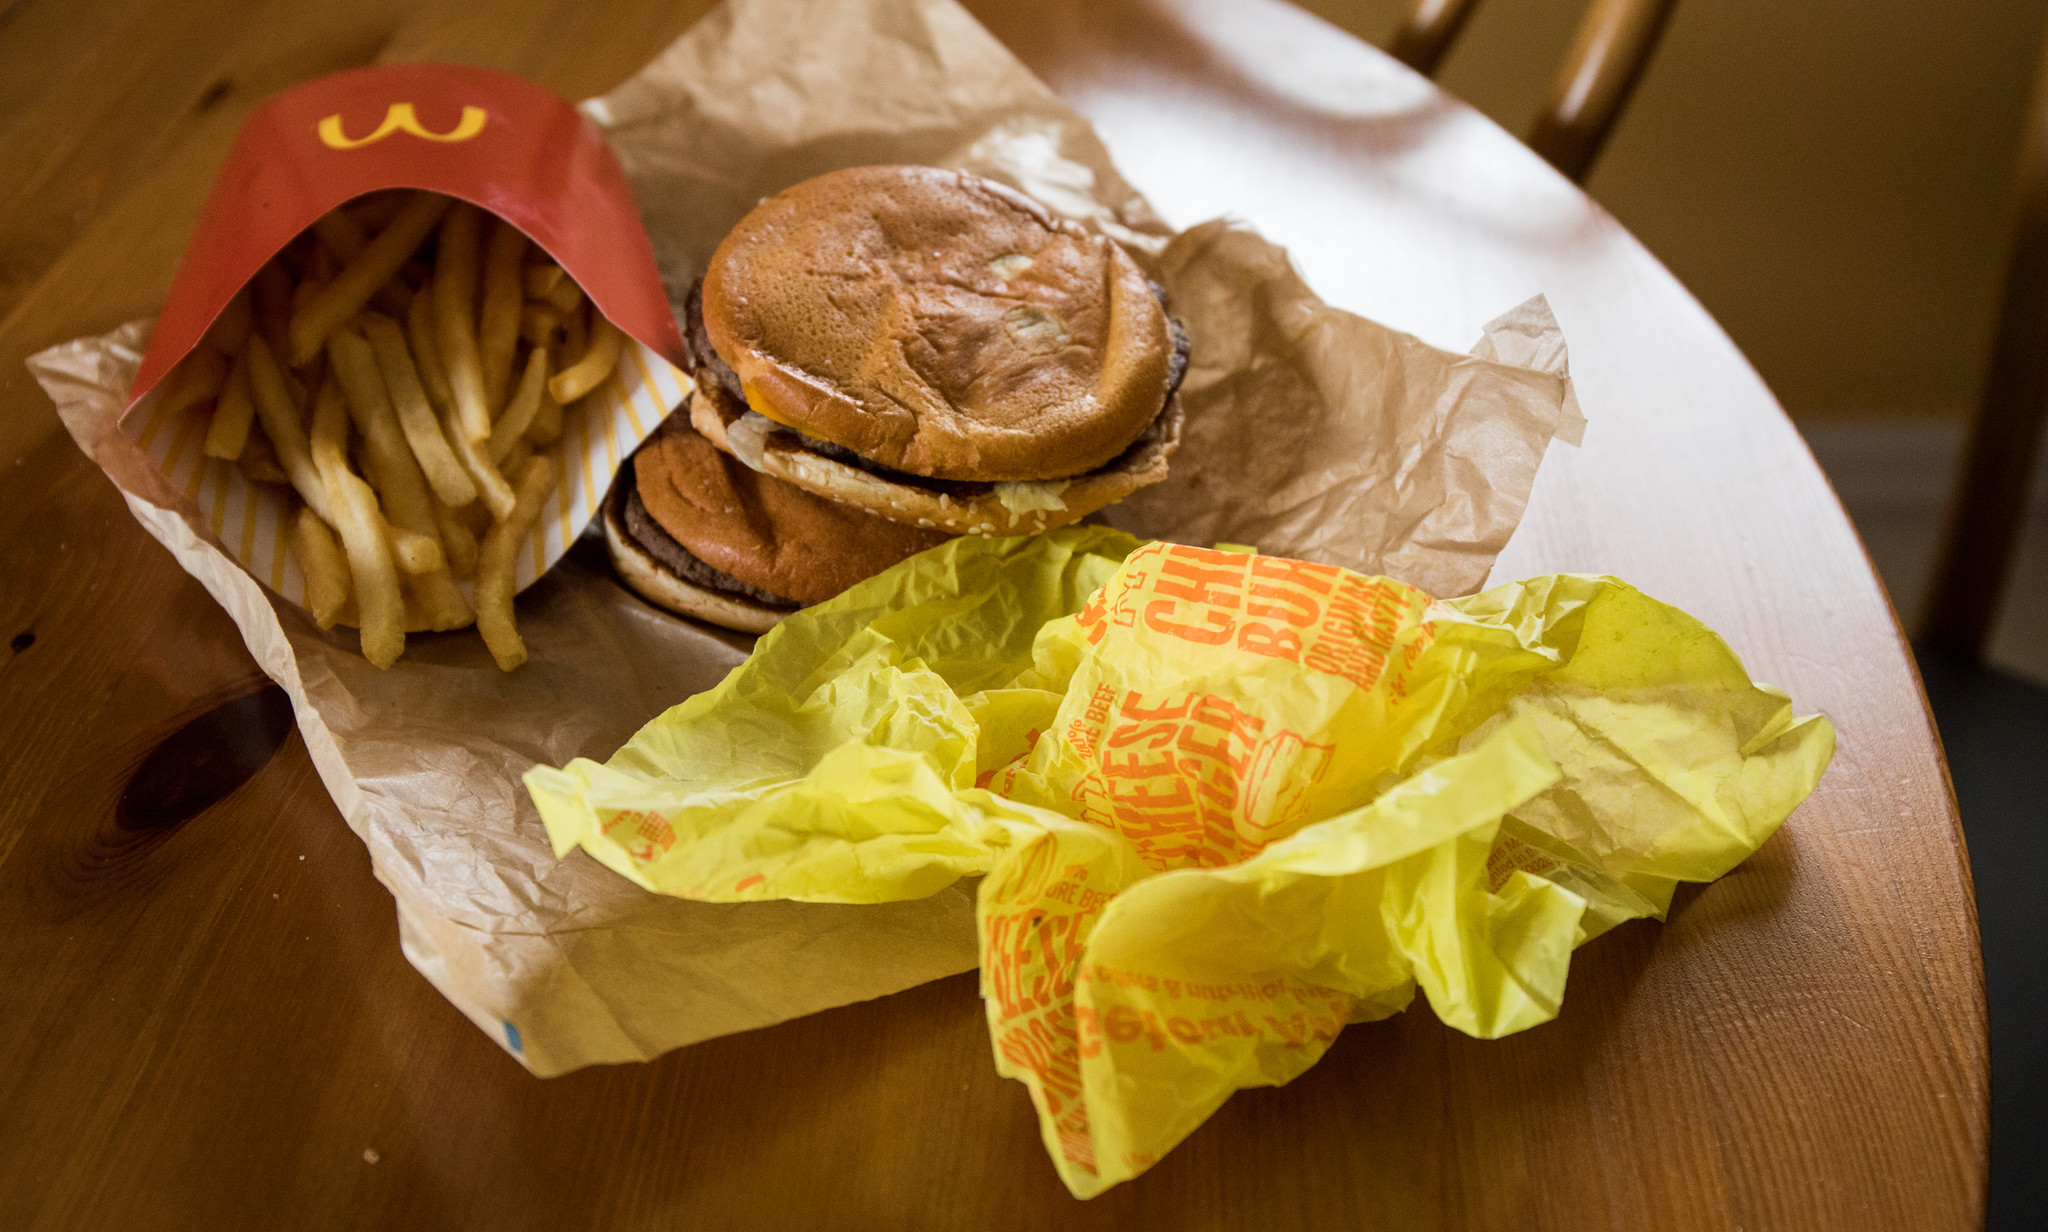 Potentially dangerous chemicals found in fast-food wrappers, researchers say